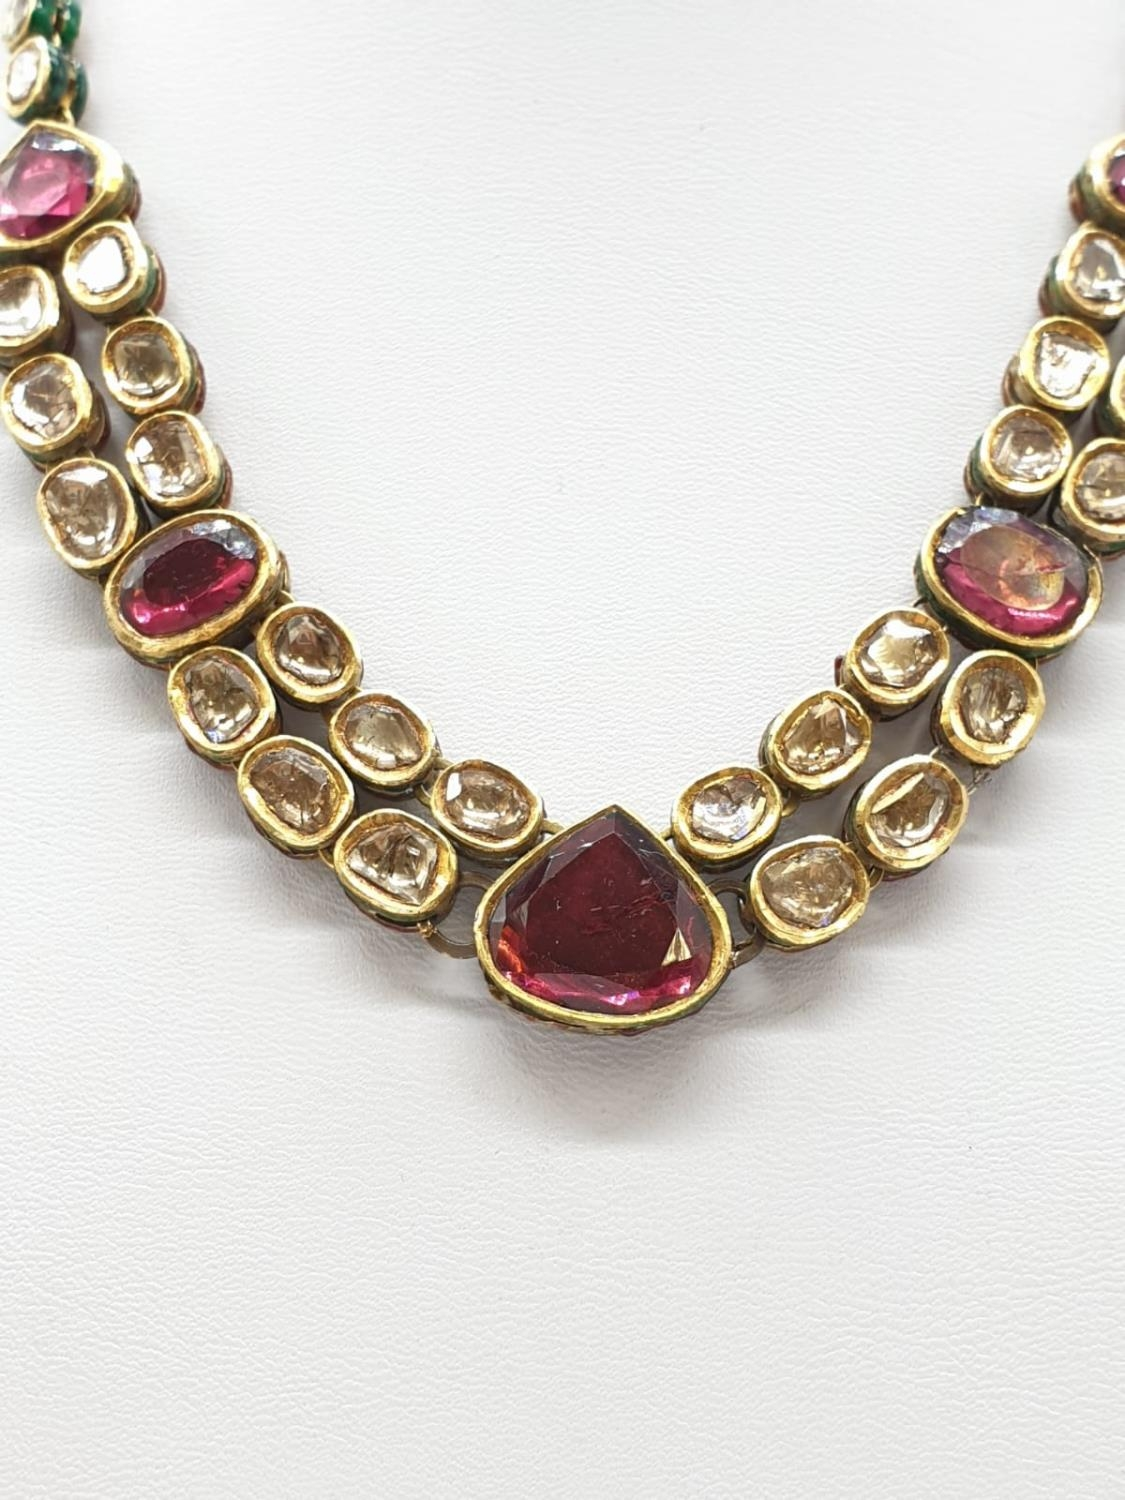 18k Indian set of Ruby and Rose Diamonds NECKLACE (40cm) and EARRINGS. 68g. - Image 5 of 9